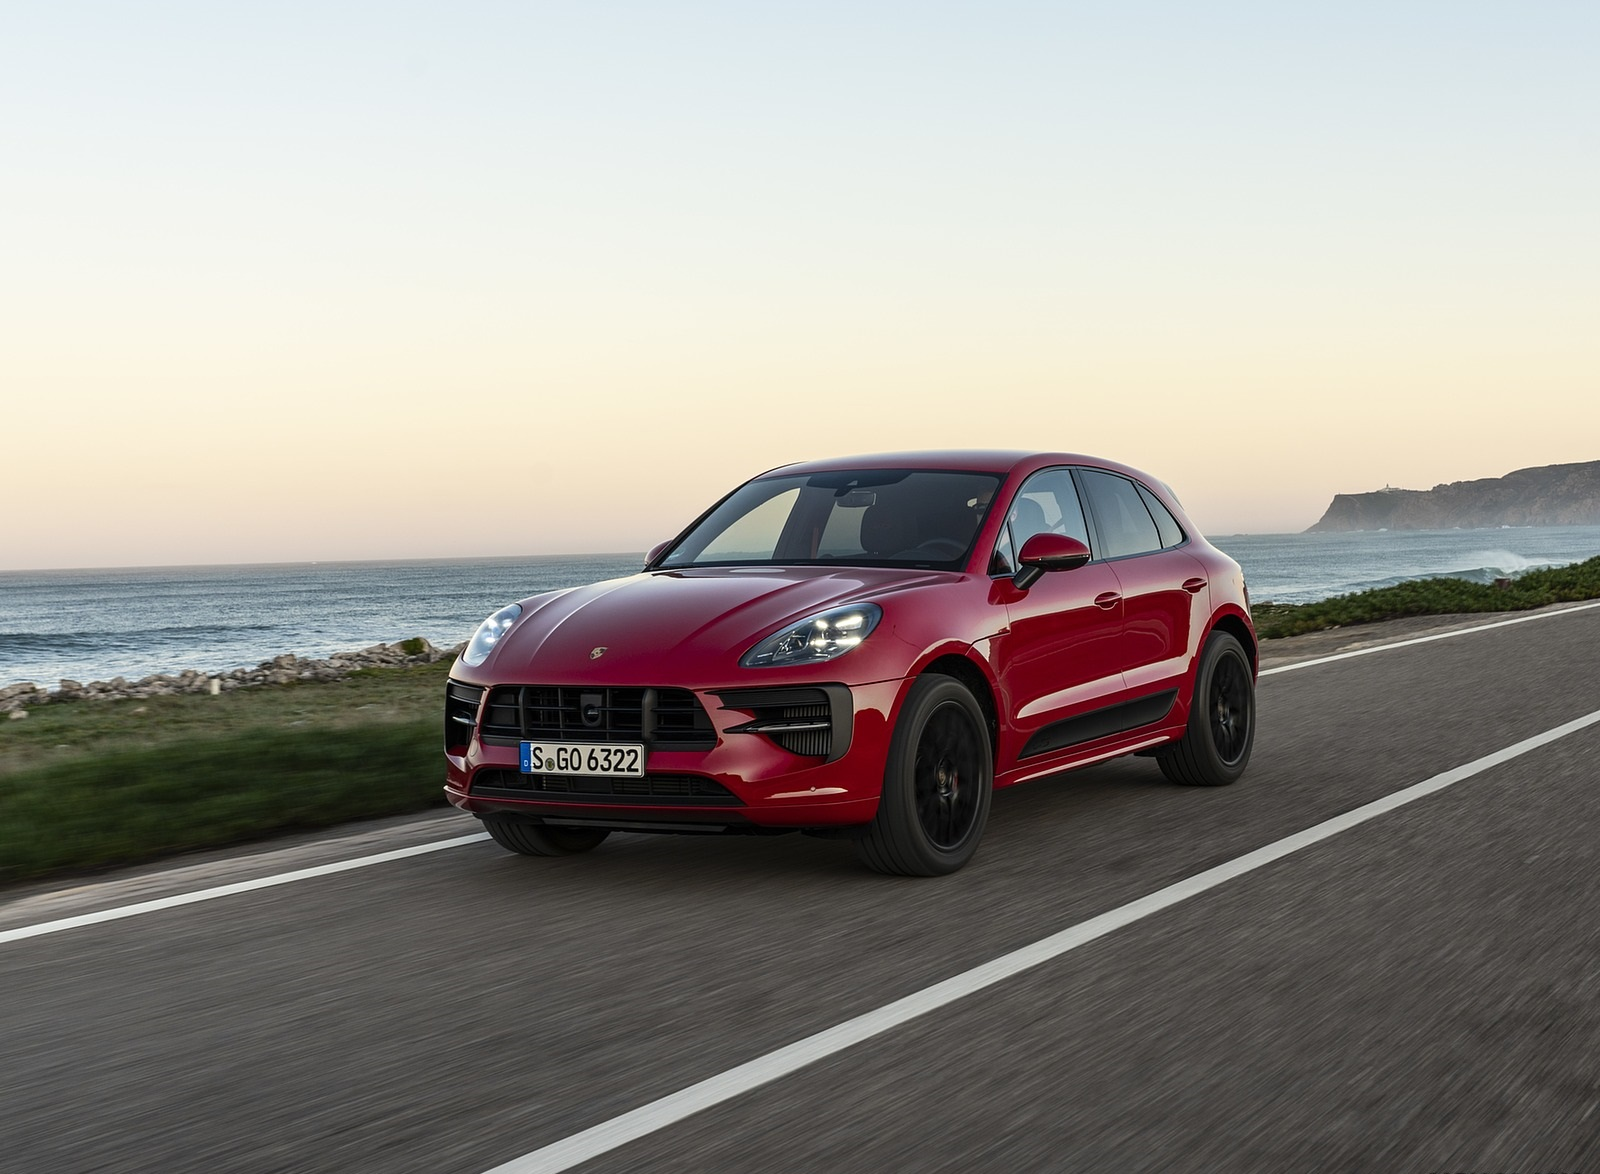 2020 Porsche Macan Gts Wallpapers 211 Hd Images Newcarcars